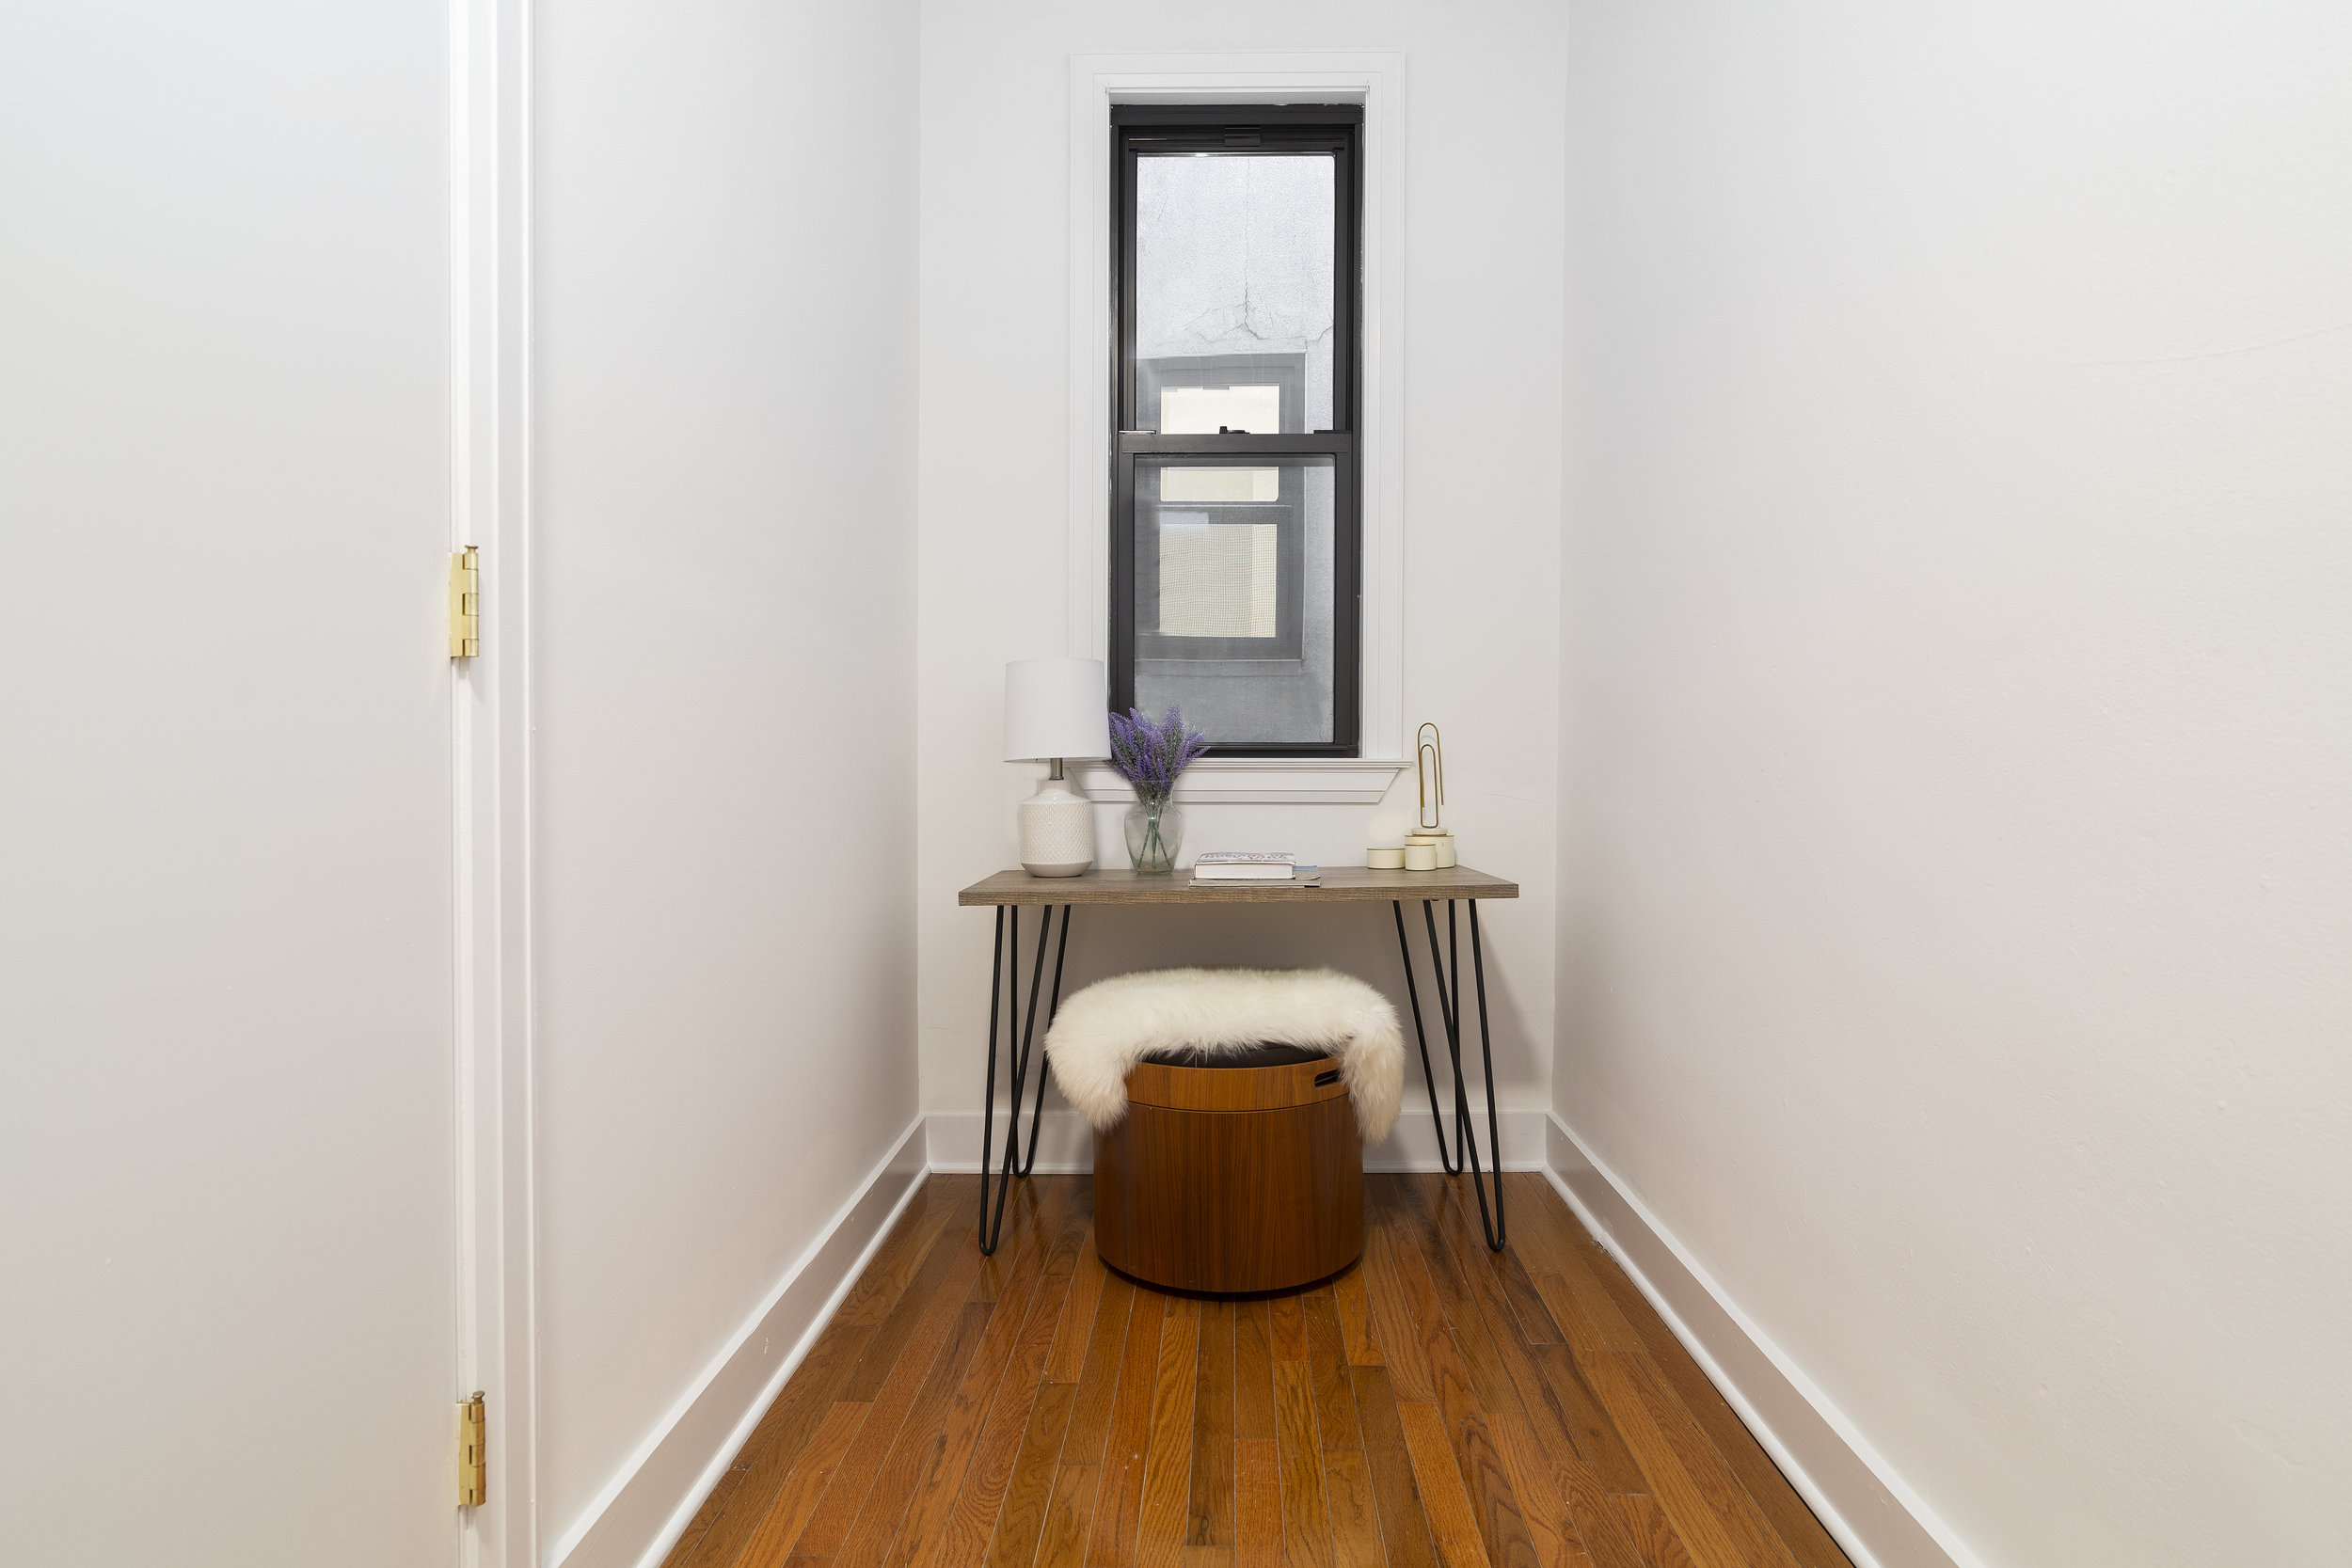 859HalseyStreet_3W_SecondBedroom-OfficeArea.jpg